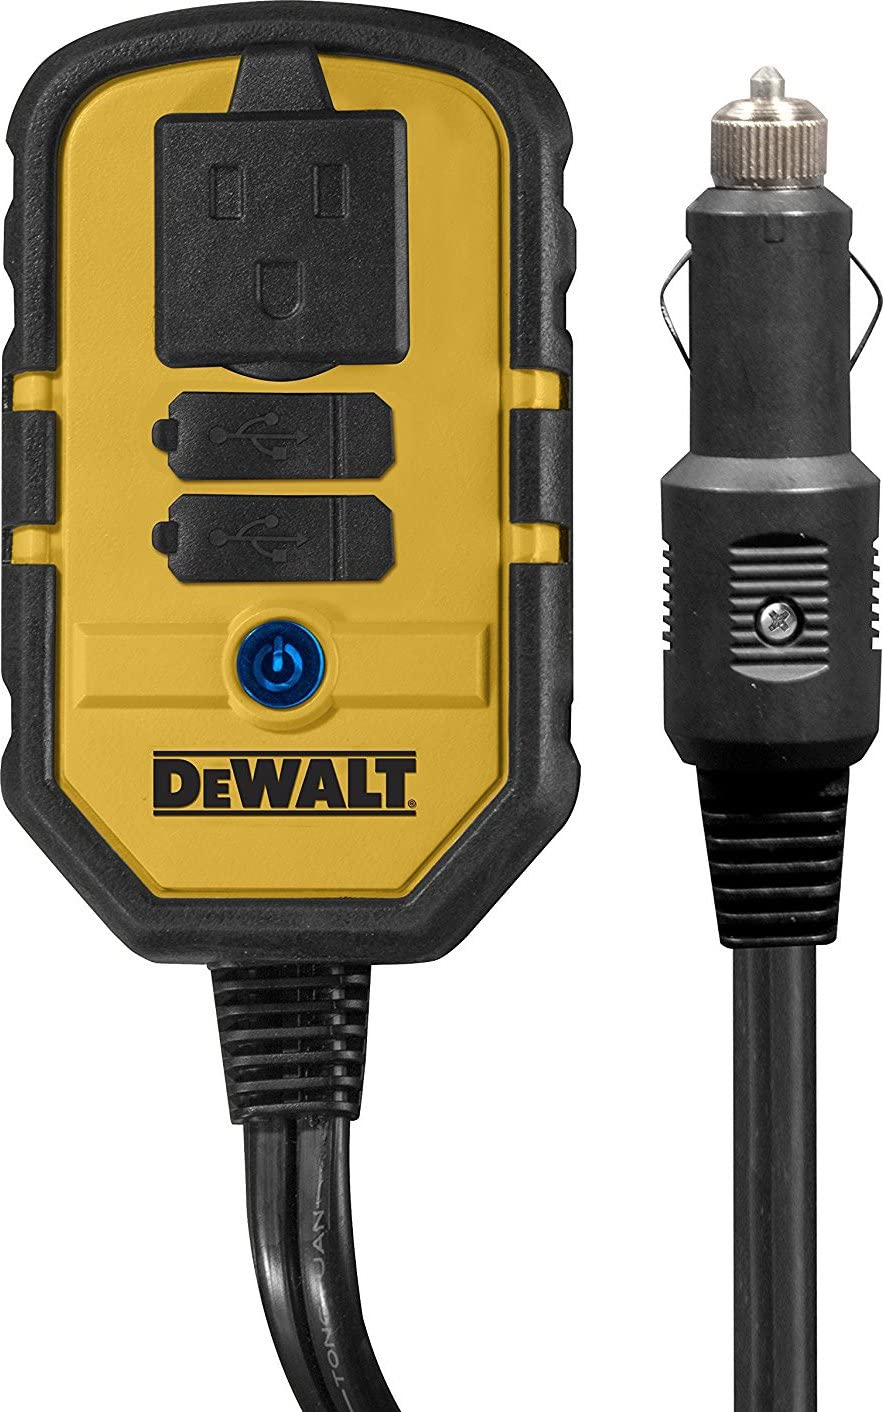 DEWALT DXAEPI140 Power Inverter 140W Car Converter: 12V DC to 120V AC...